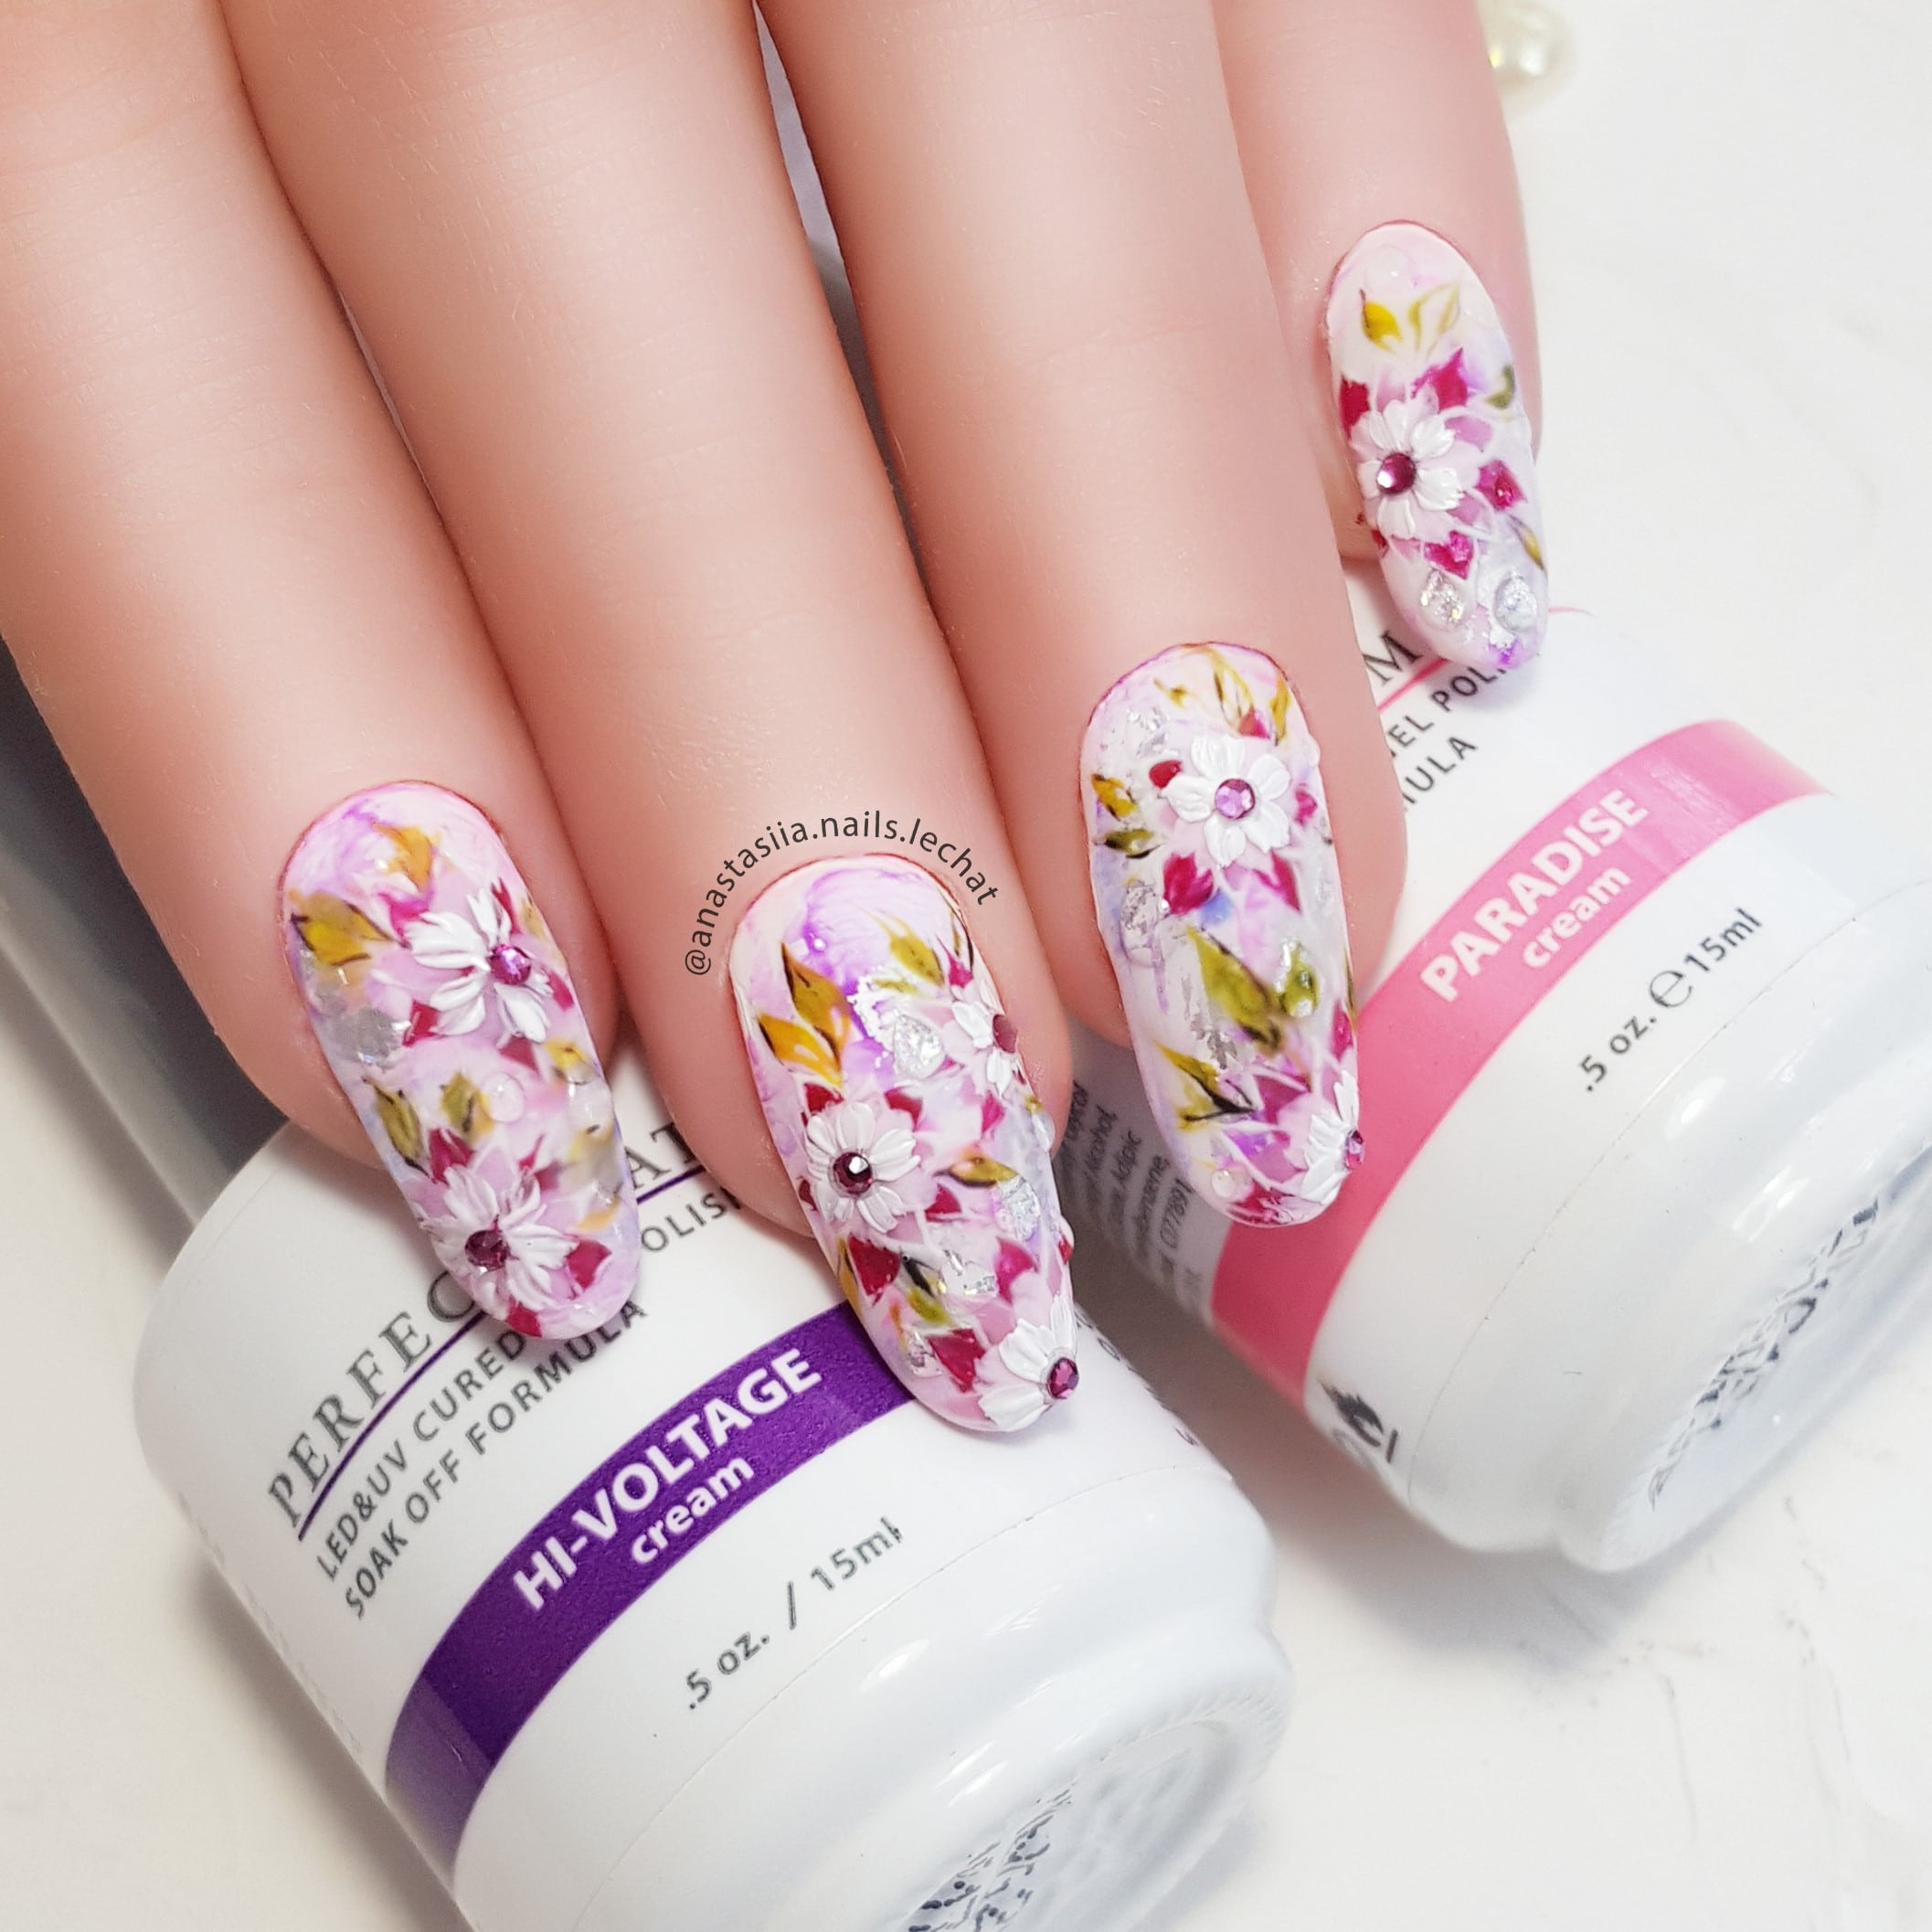 nail art with pink and white flowers